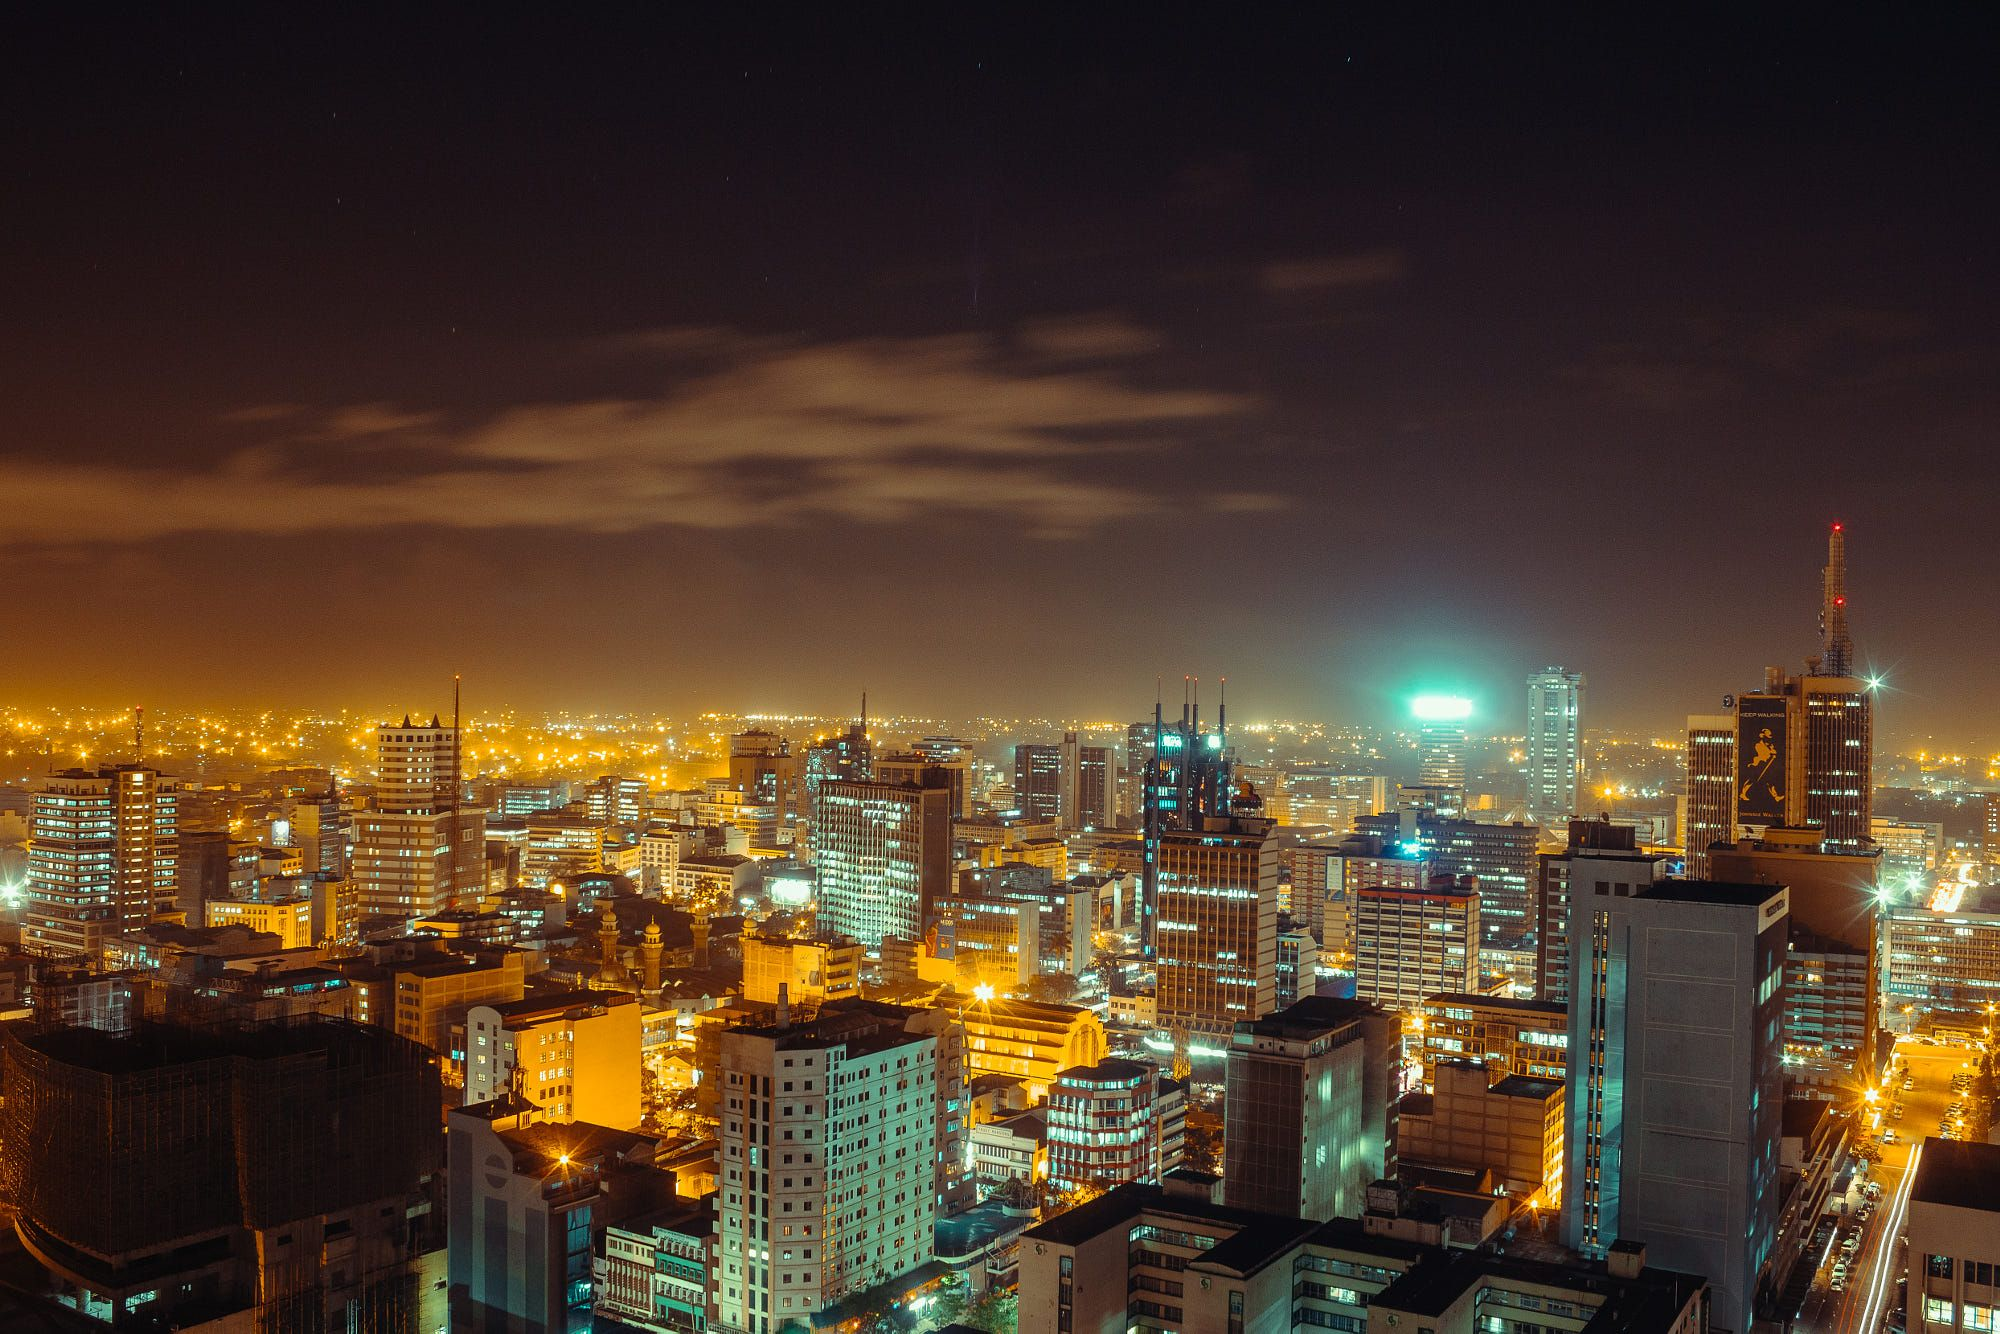 View of Nairobi city at night | Nairobi city, Nairobi, Night city